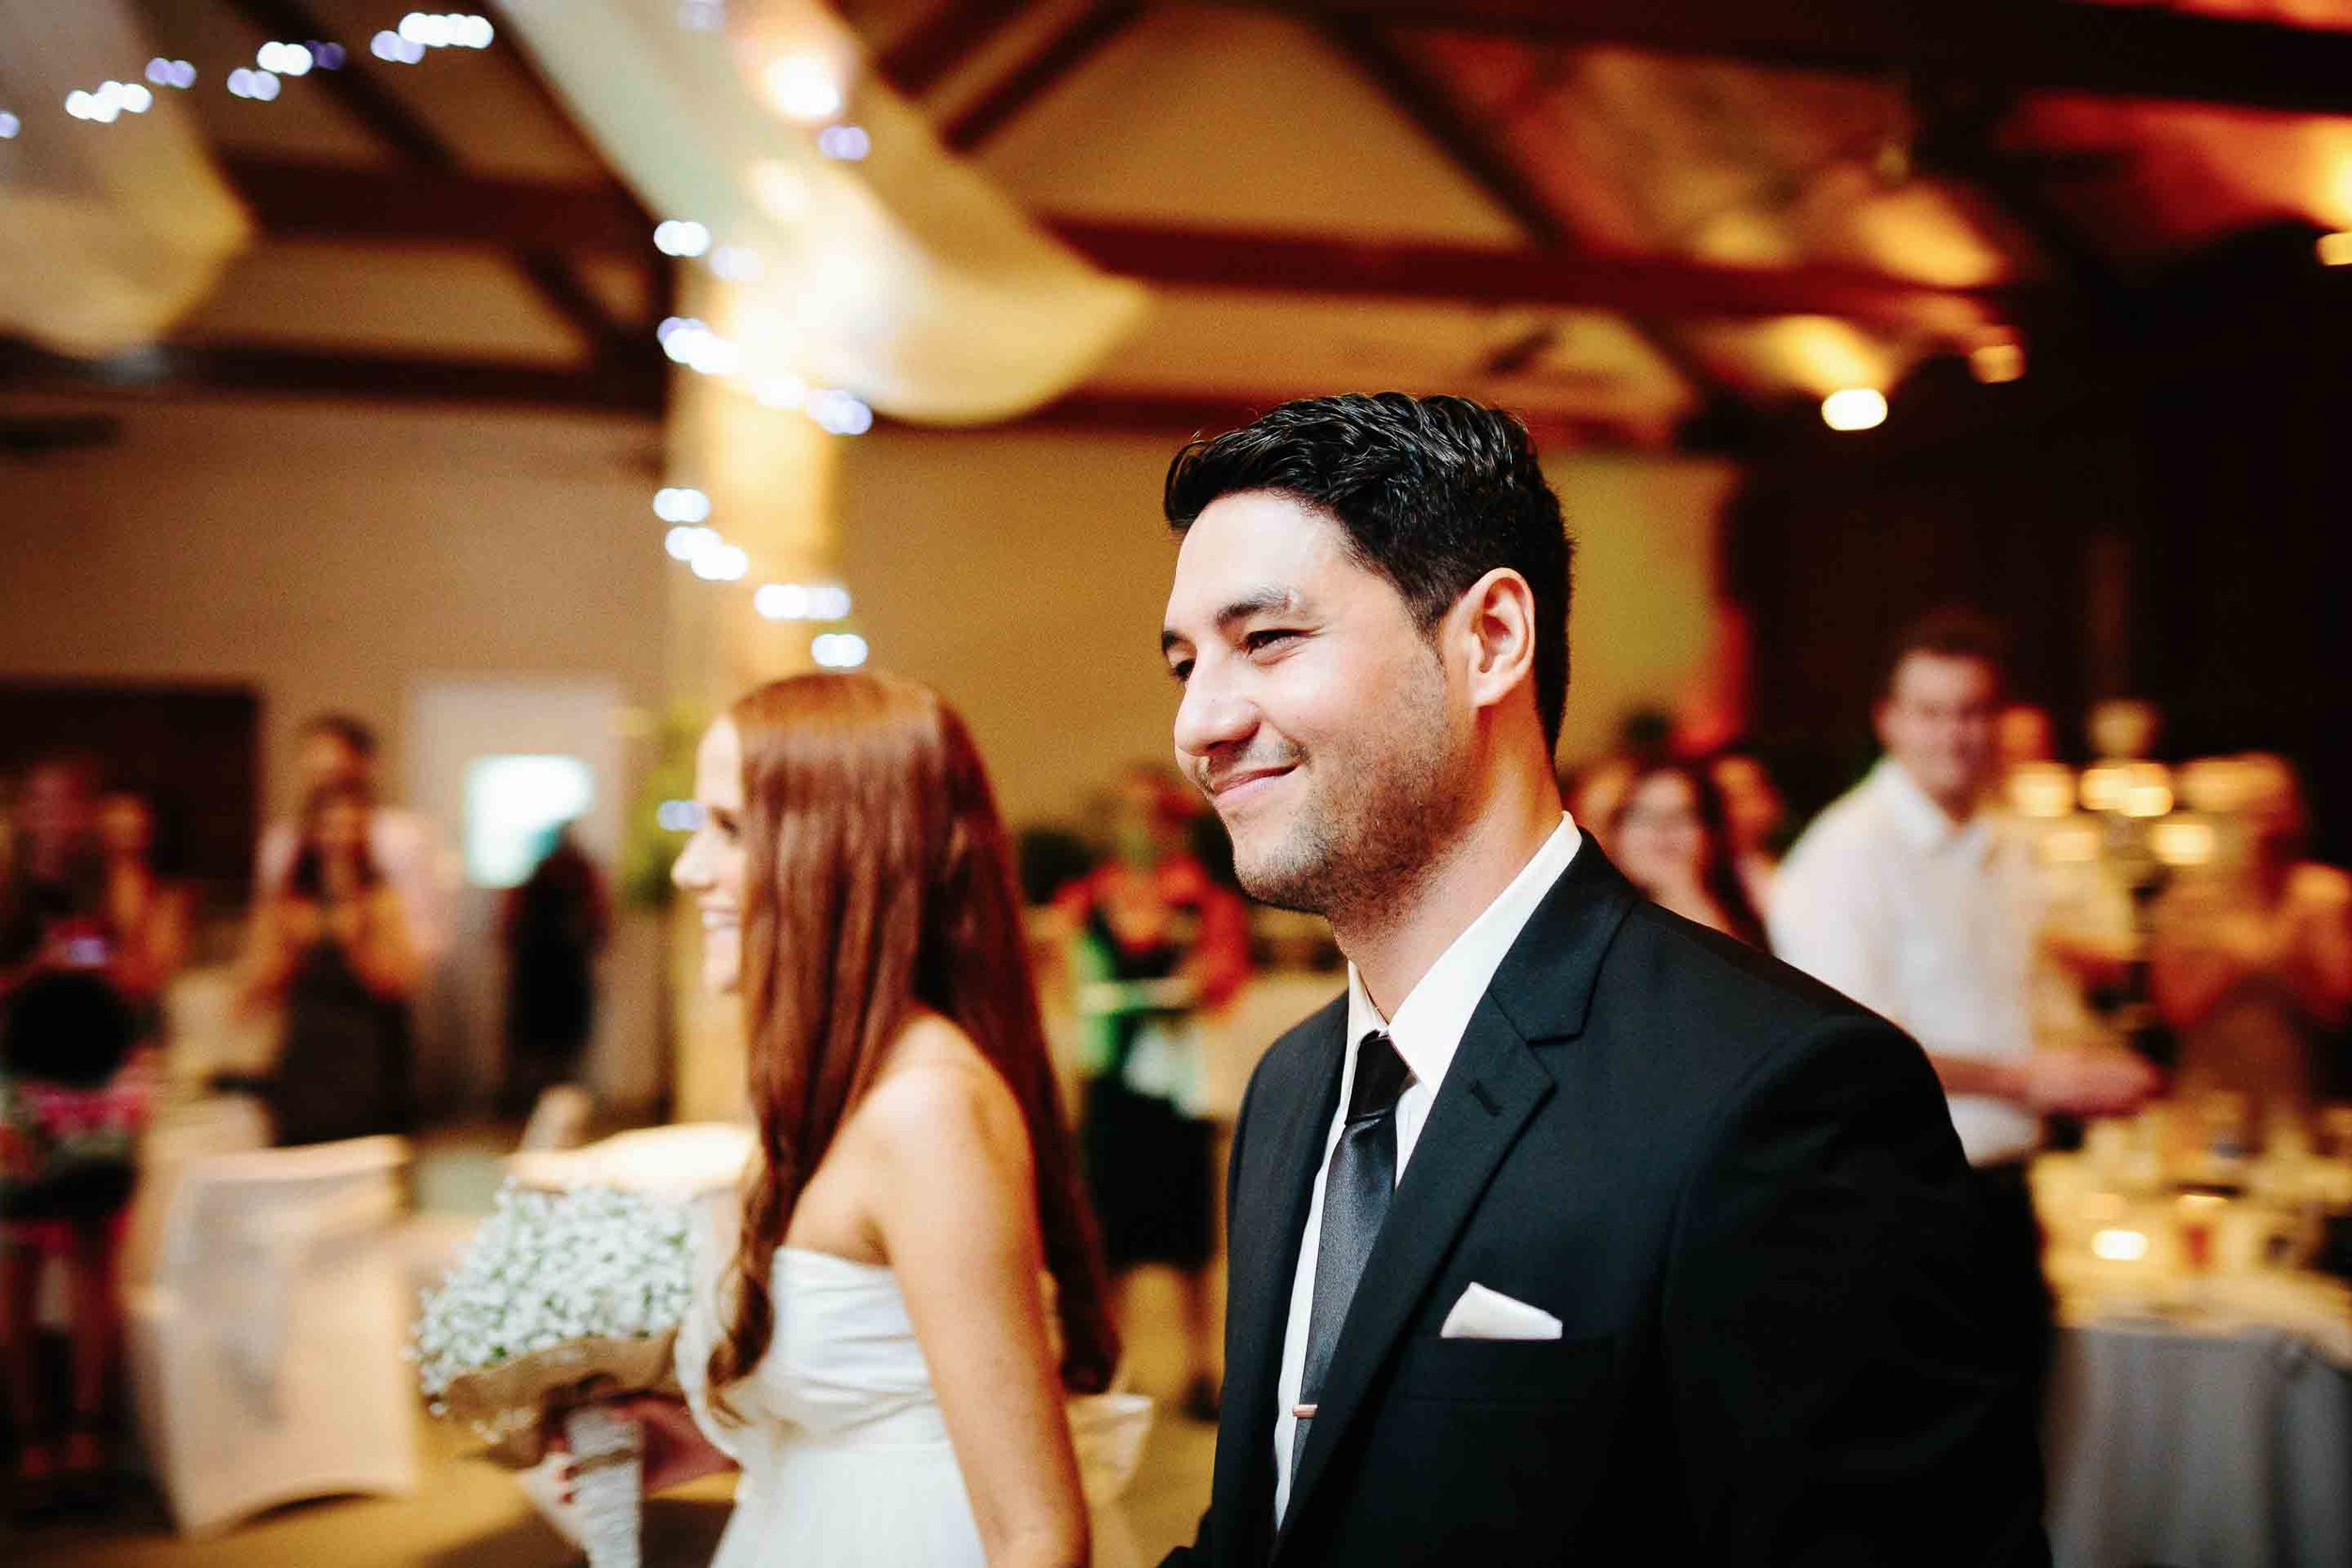 groom smiling as he leads his bride to their dinner table